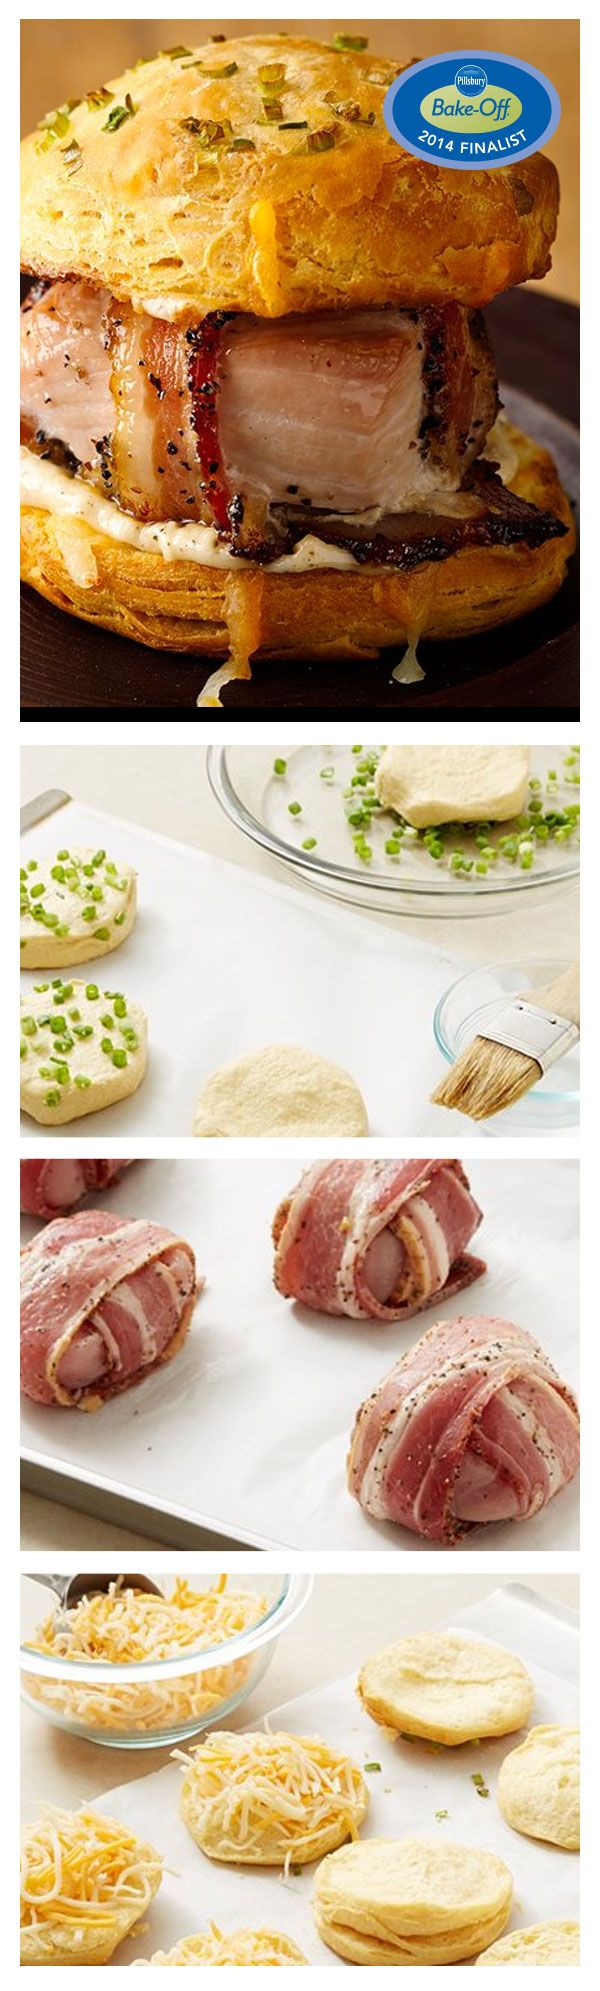 47th Bake-Off Contest Finalist: Peppered Bacon-Wrapped Turkey Pub Sandwiches by Betty Staufenbiel from St Louis, MO